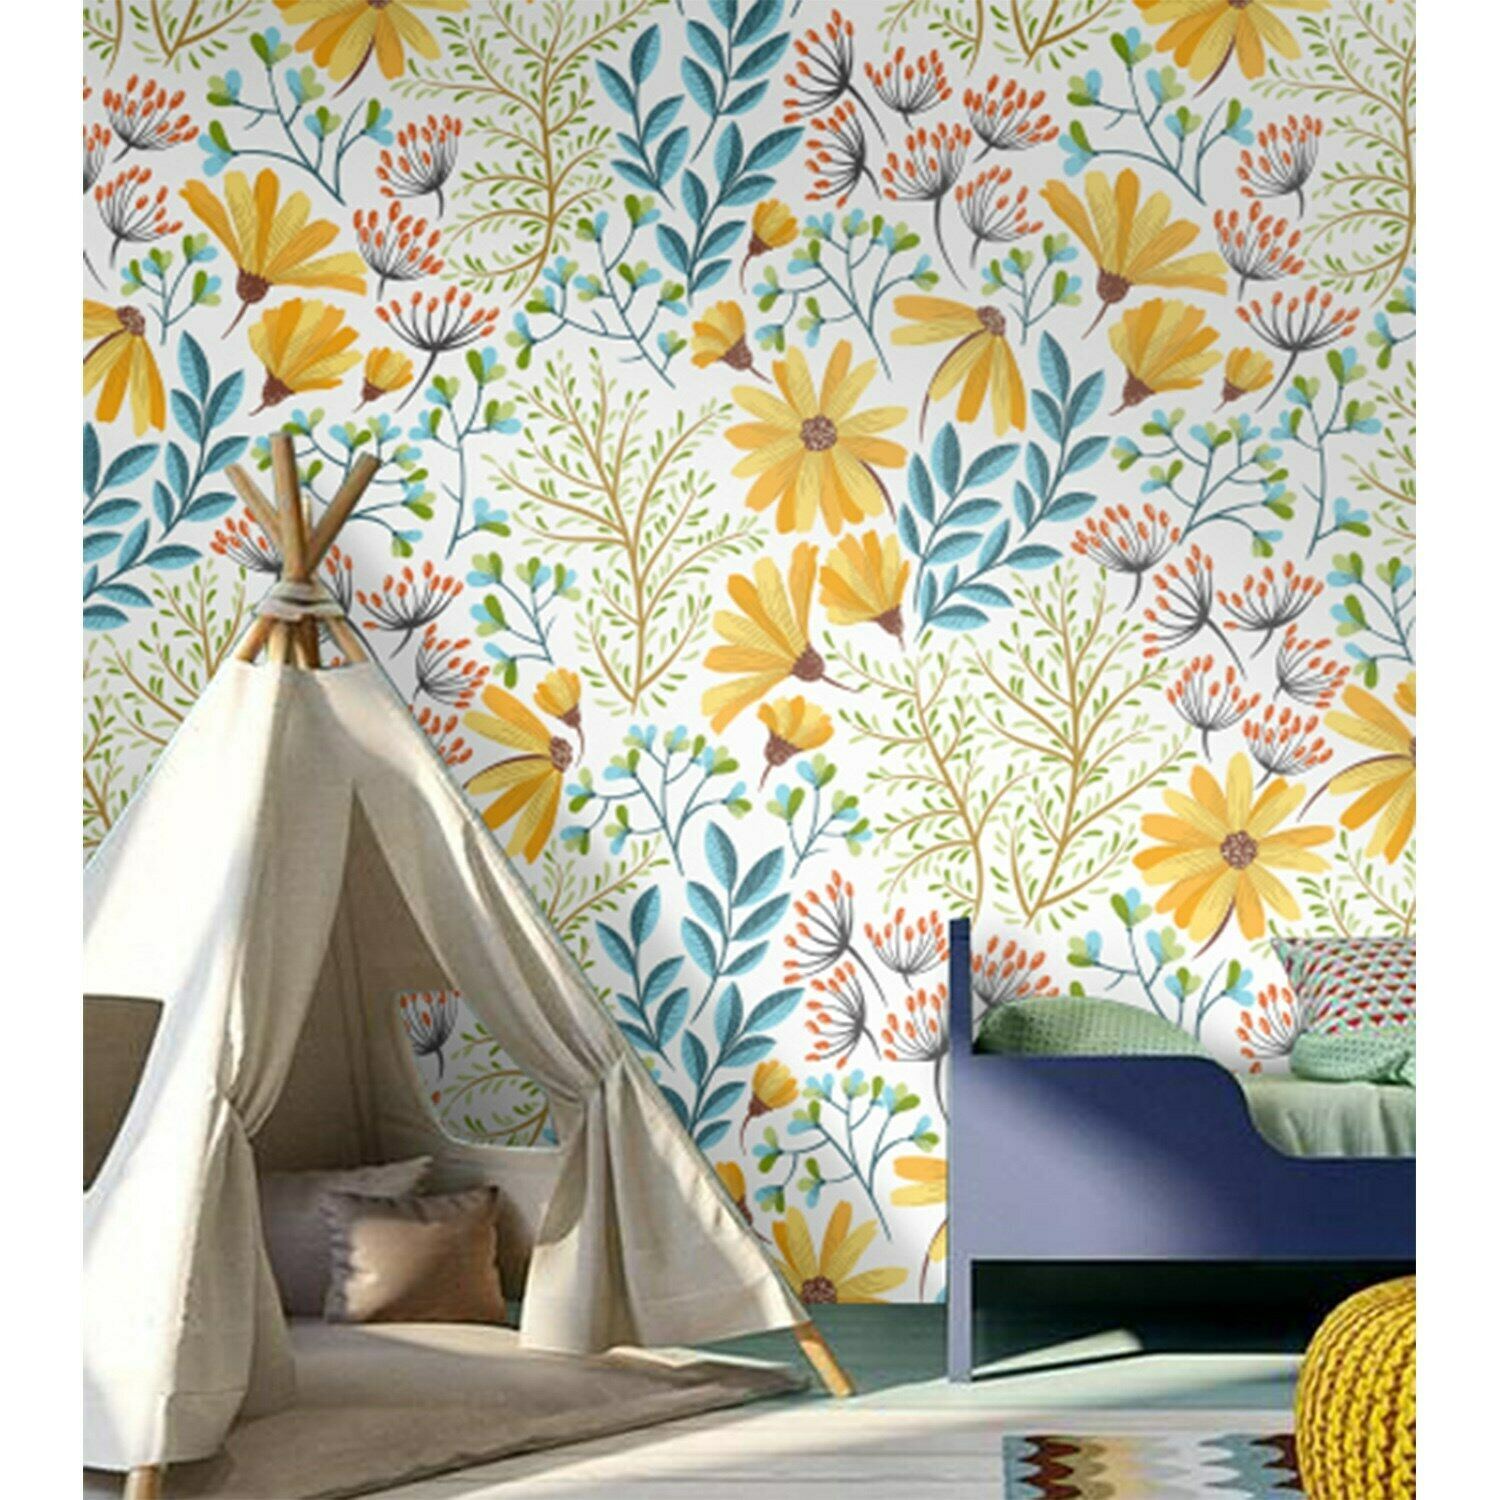 Removable wallpaper bohemian spring floral Stylish Vintage style